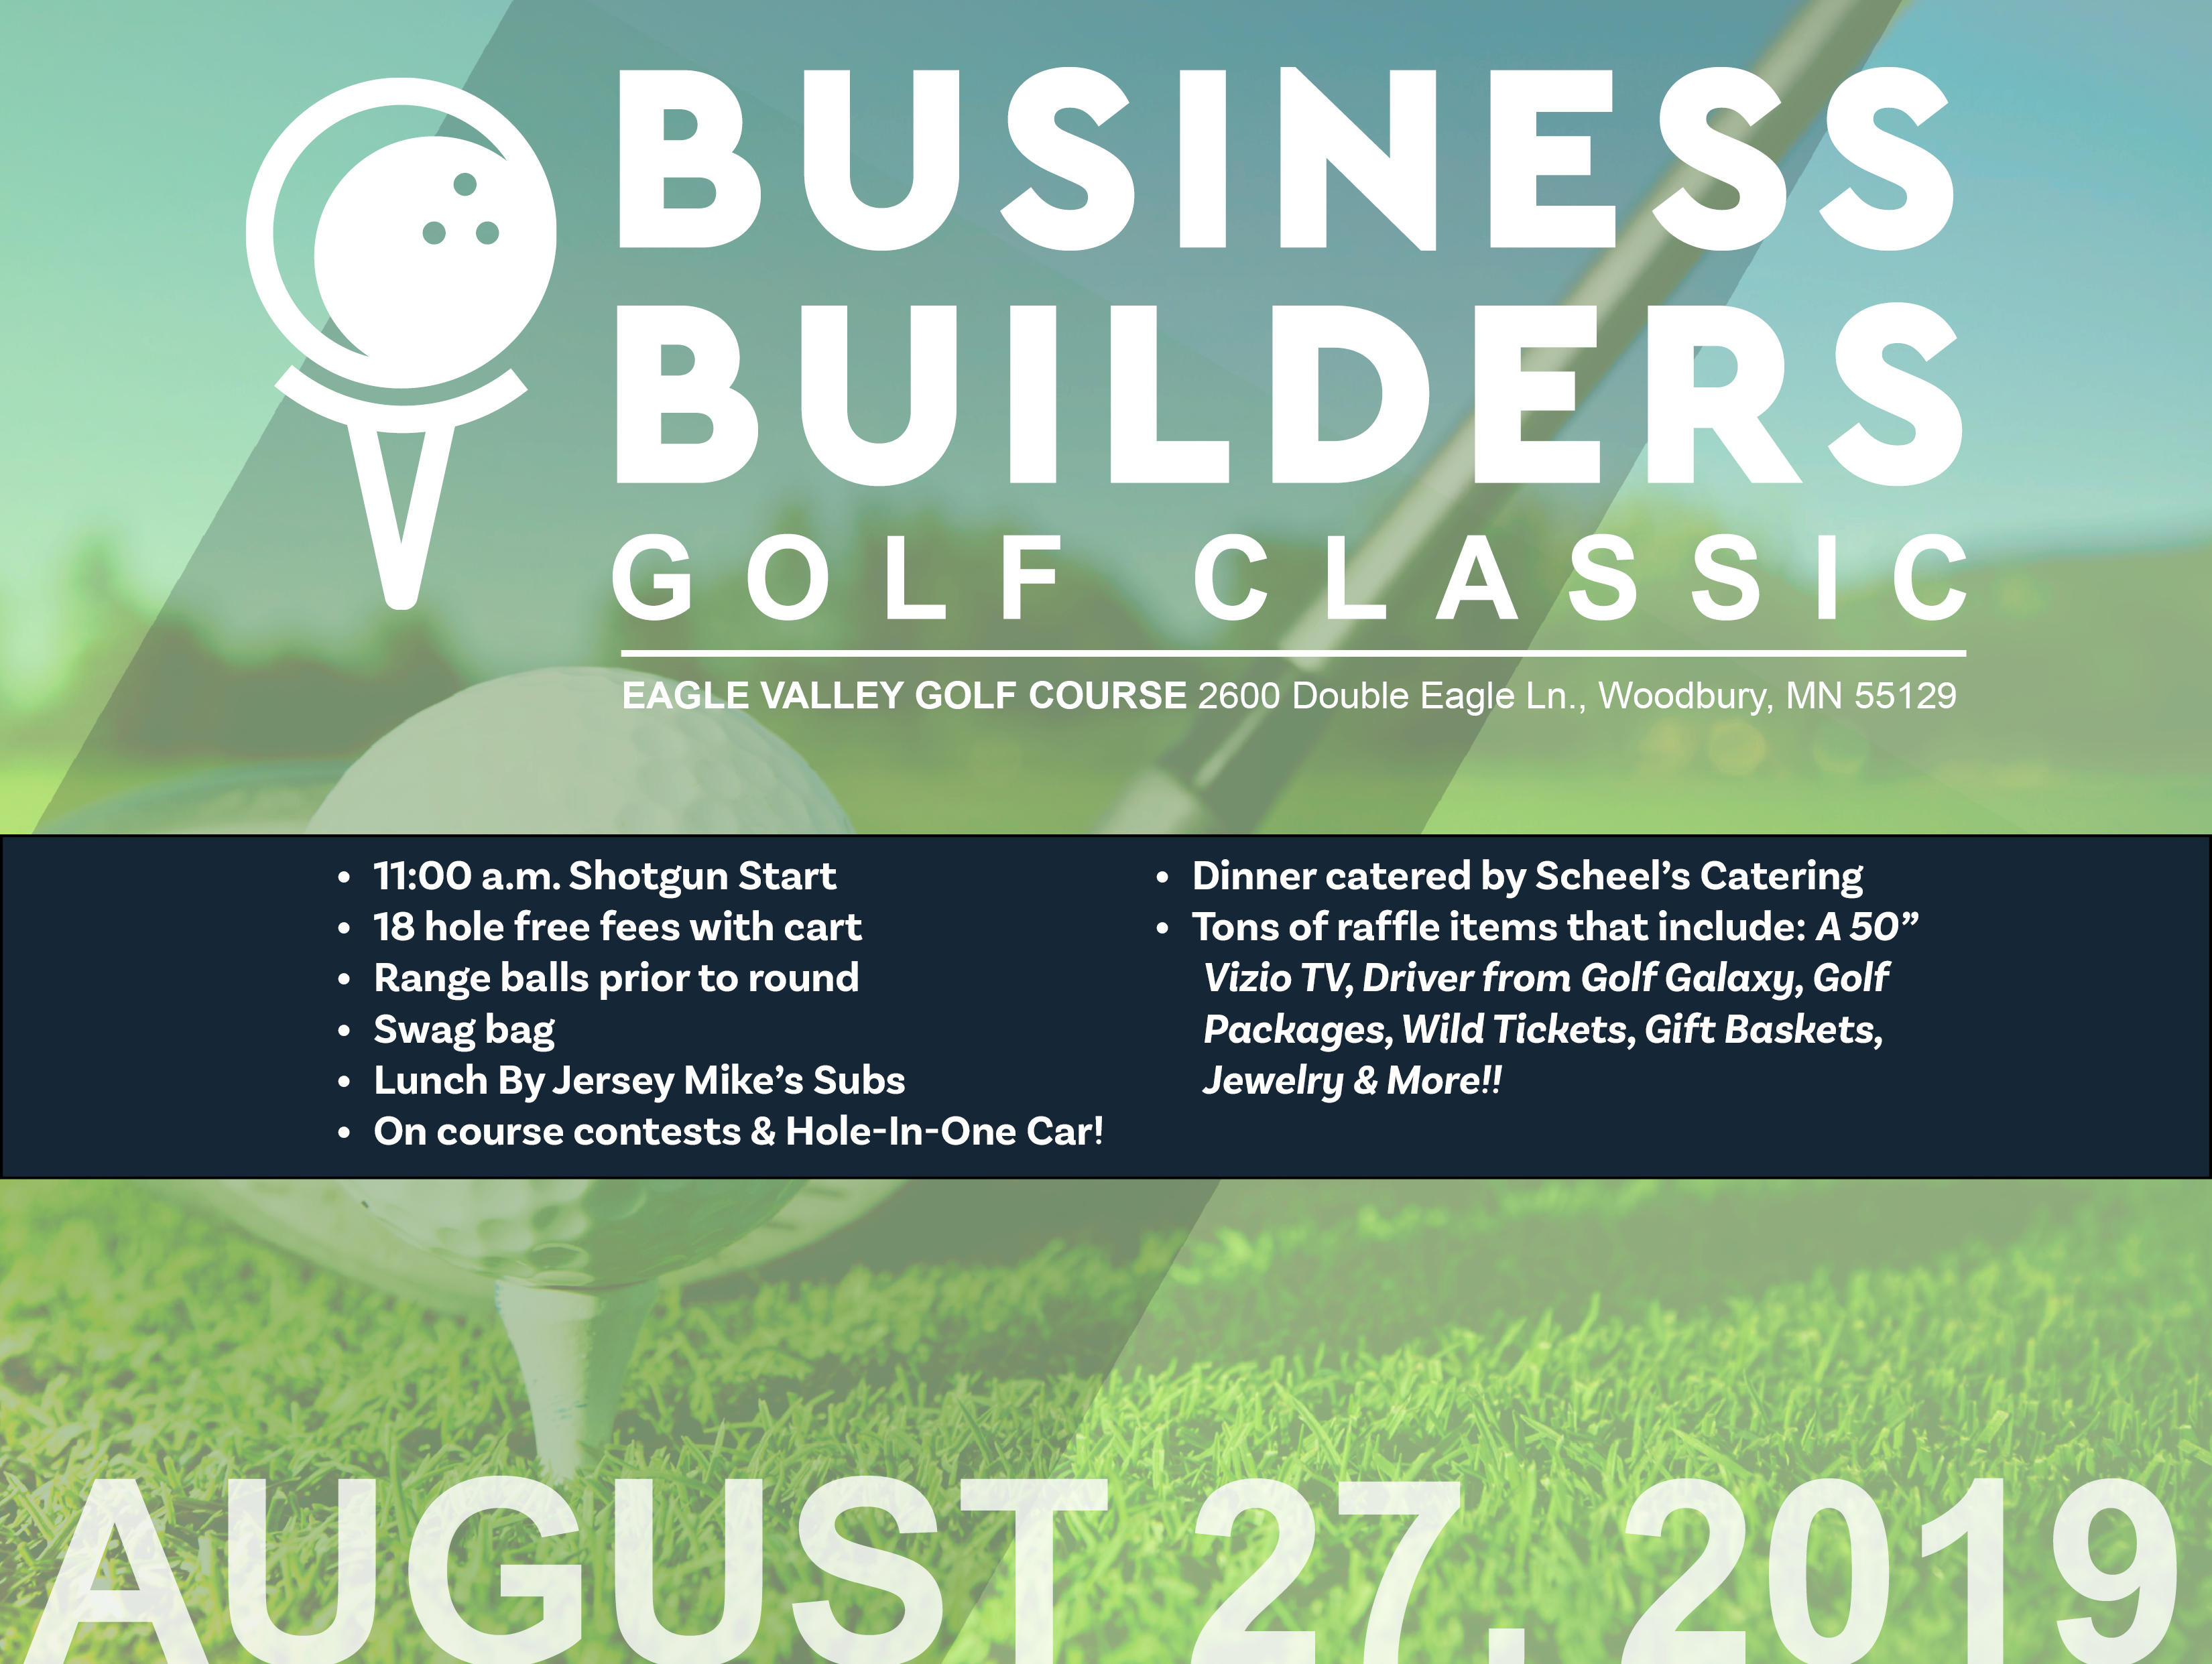 Business-Builder-Golf-Classic_Facebook-Post-1